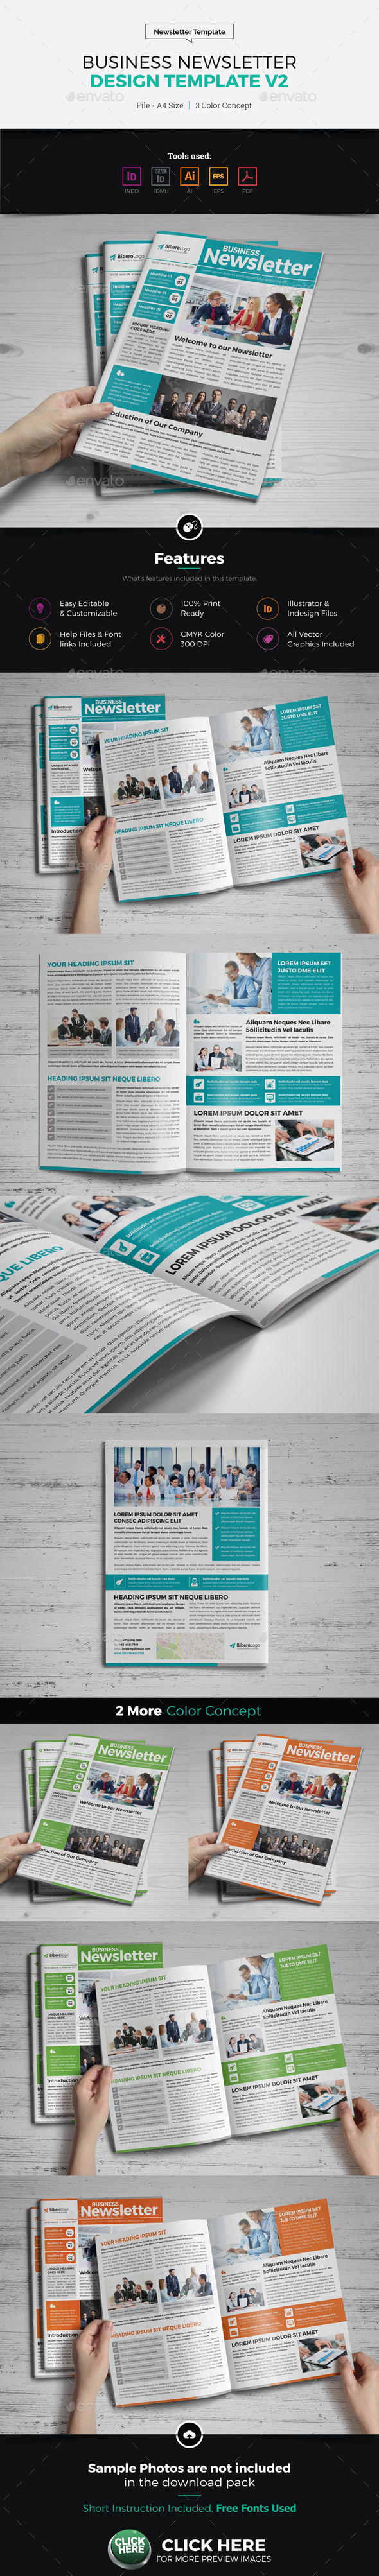 Newsletter Design Template v2 - Newsletters Print Templates